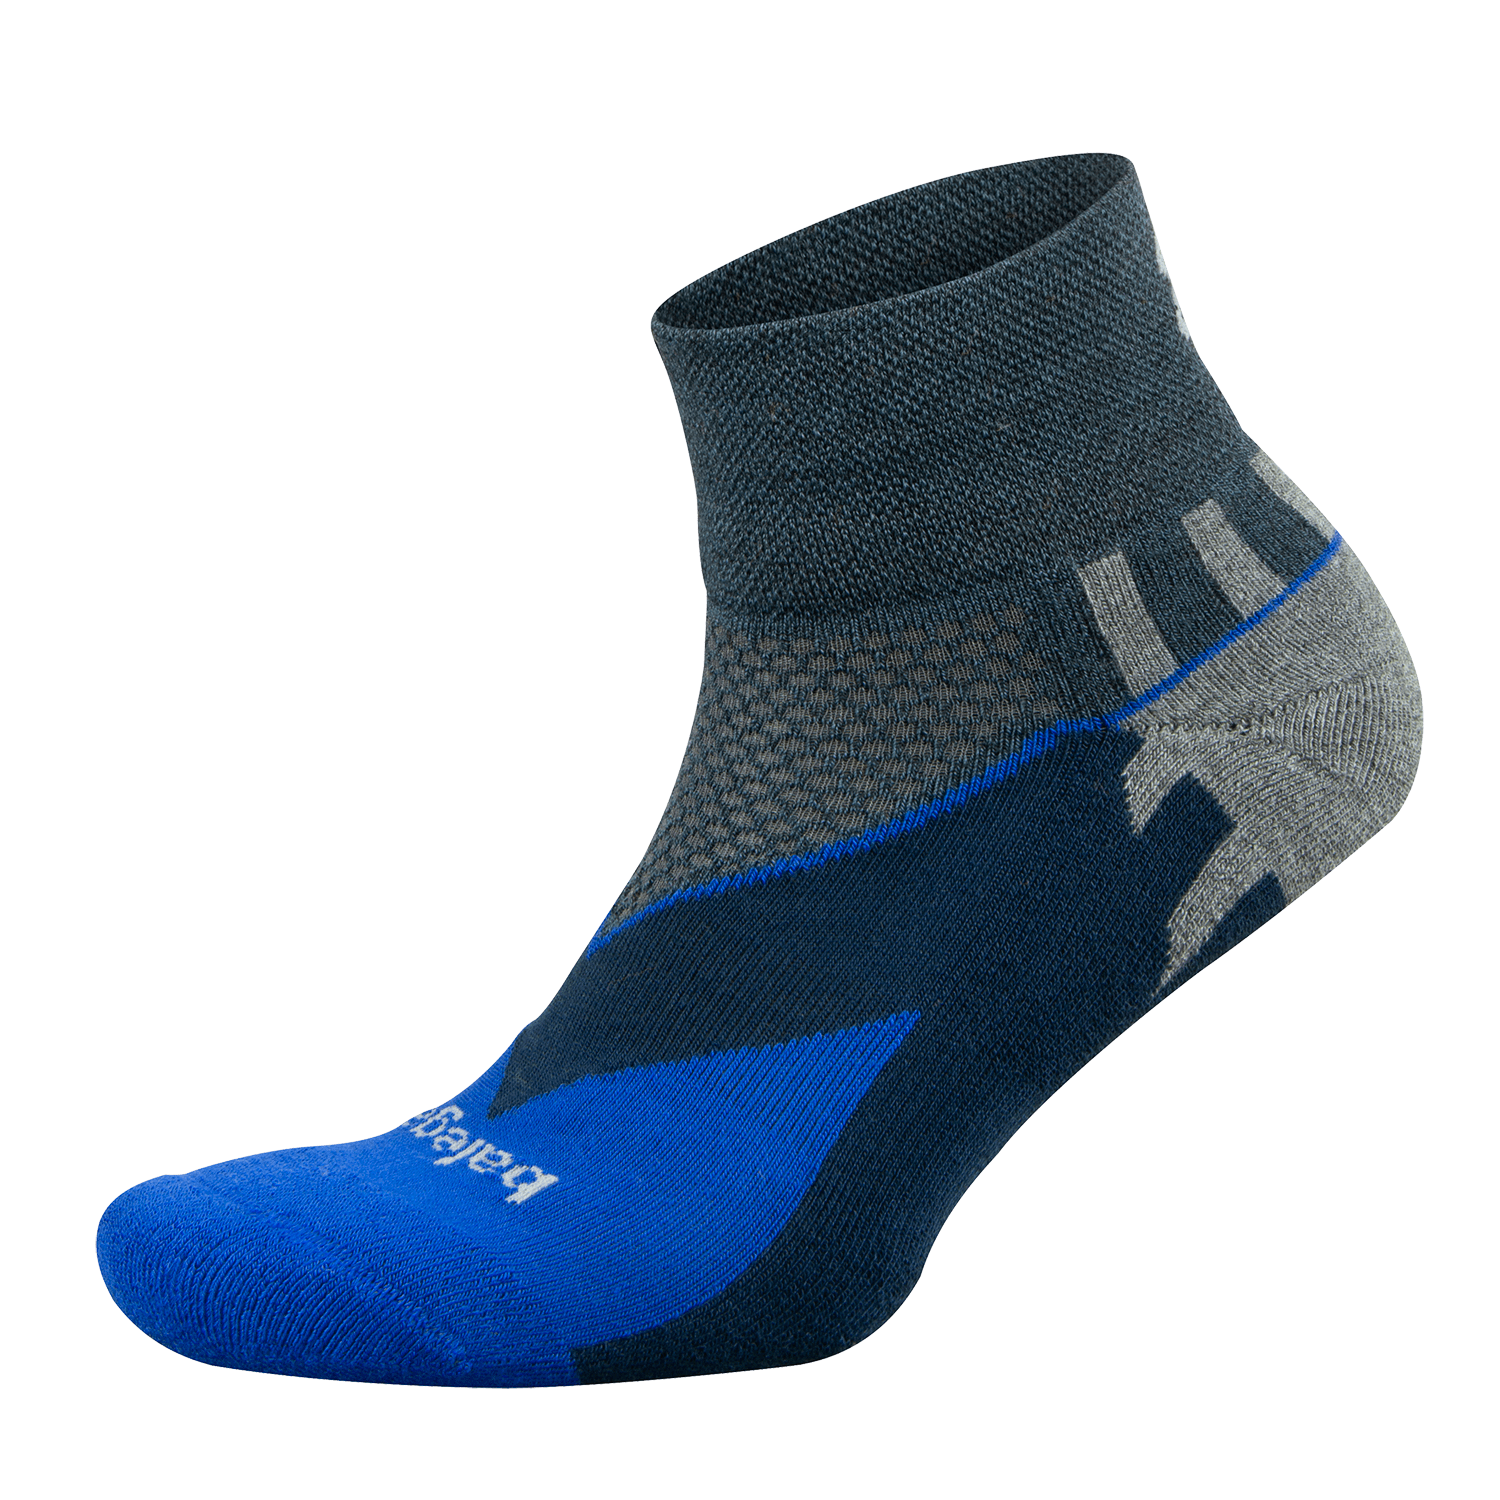 New 2019: Enduro Quarter  in Cobalt/ Charcoal